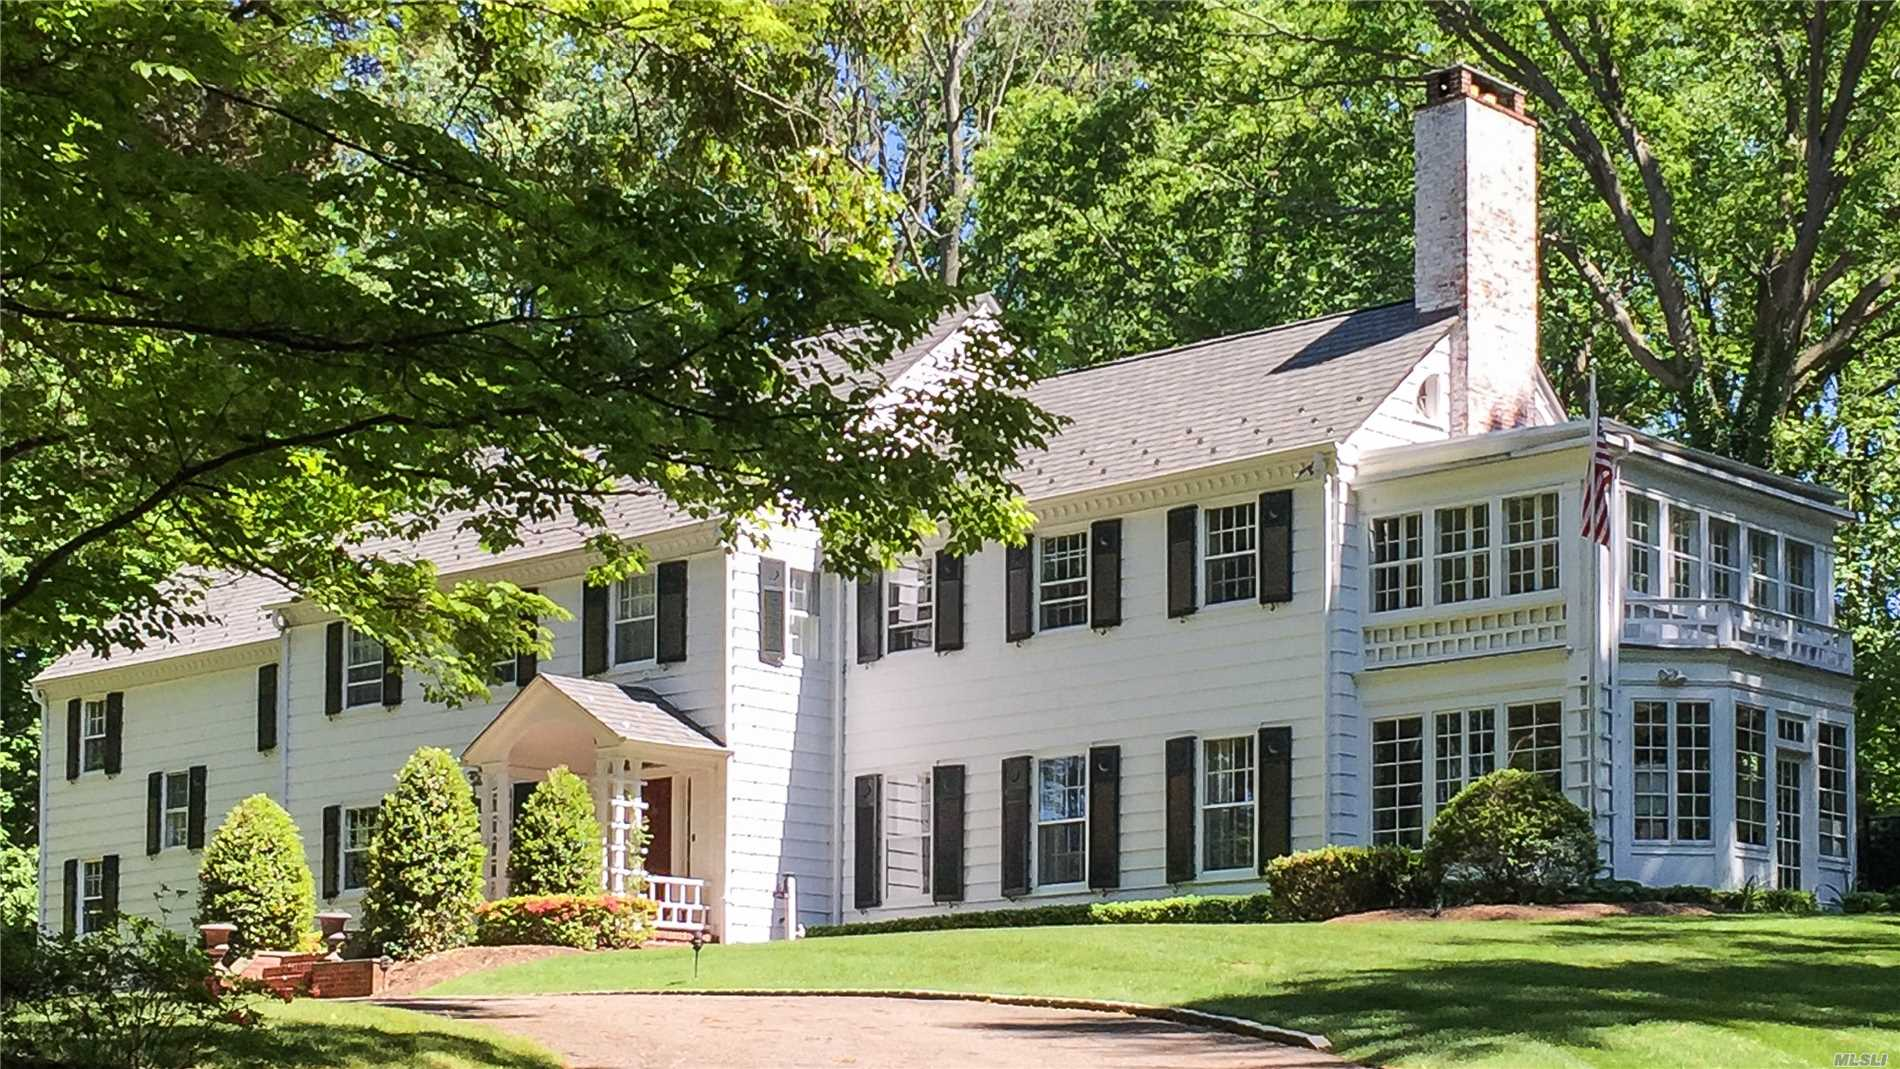 96 Cove Rd Oyster Bay Cove, NY 11771